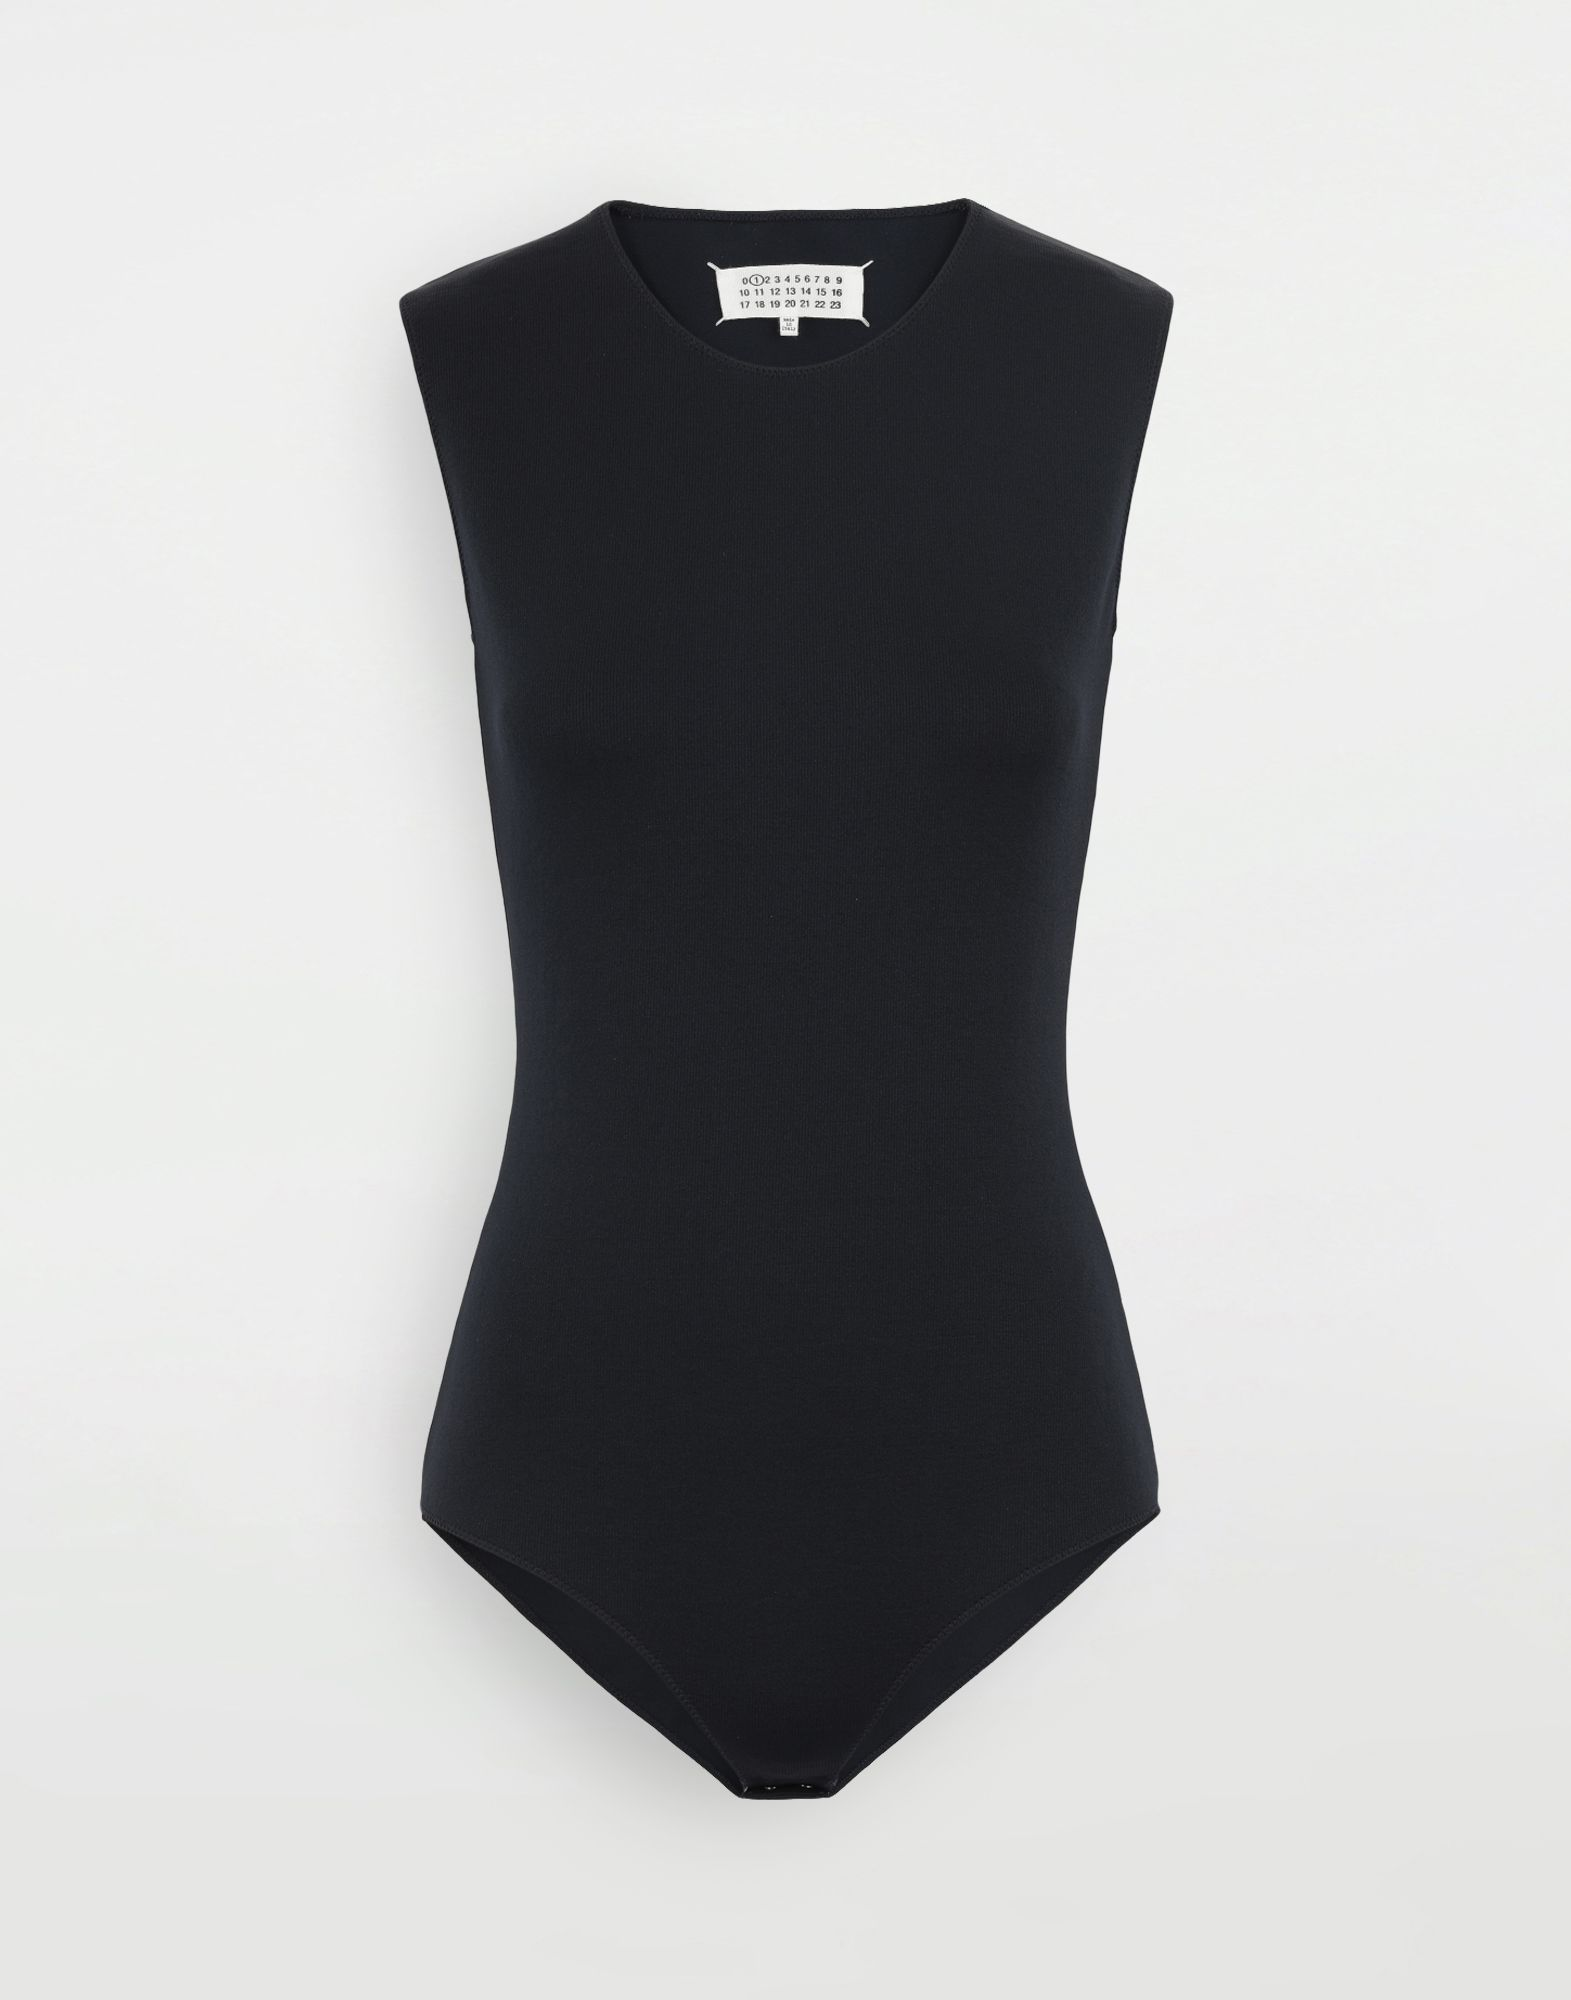 MAISON MARGIELA Bodysuit Body Woman f